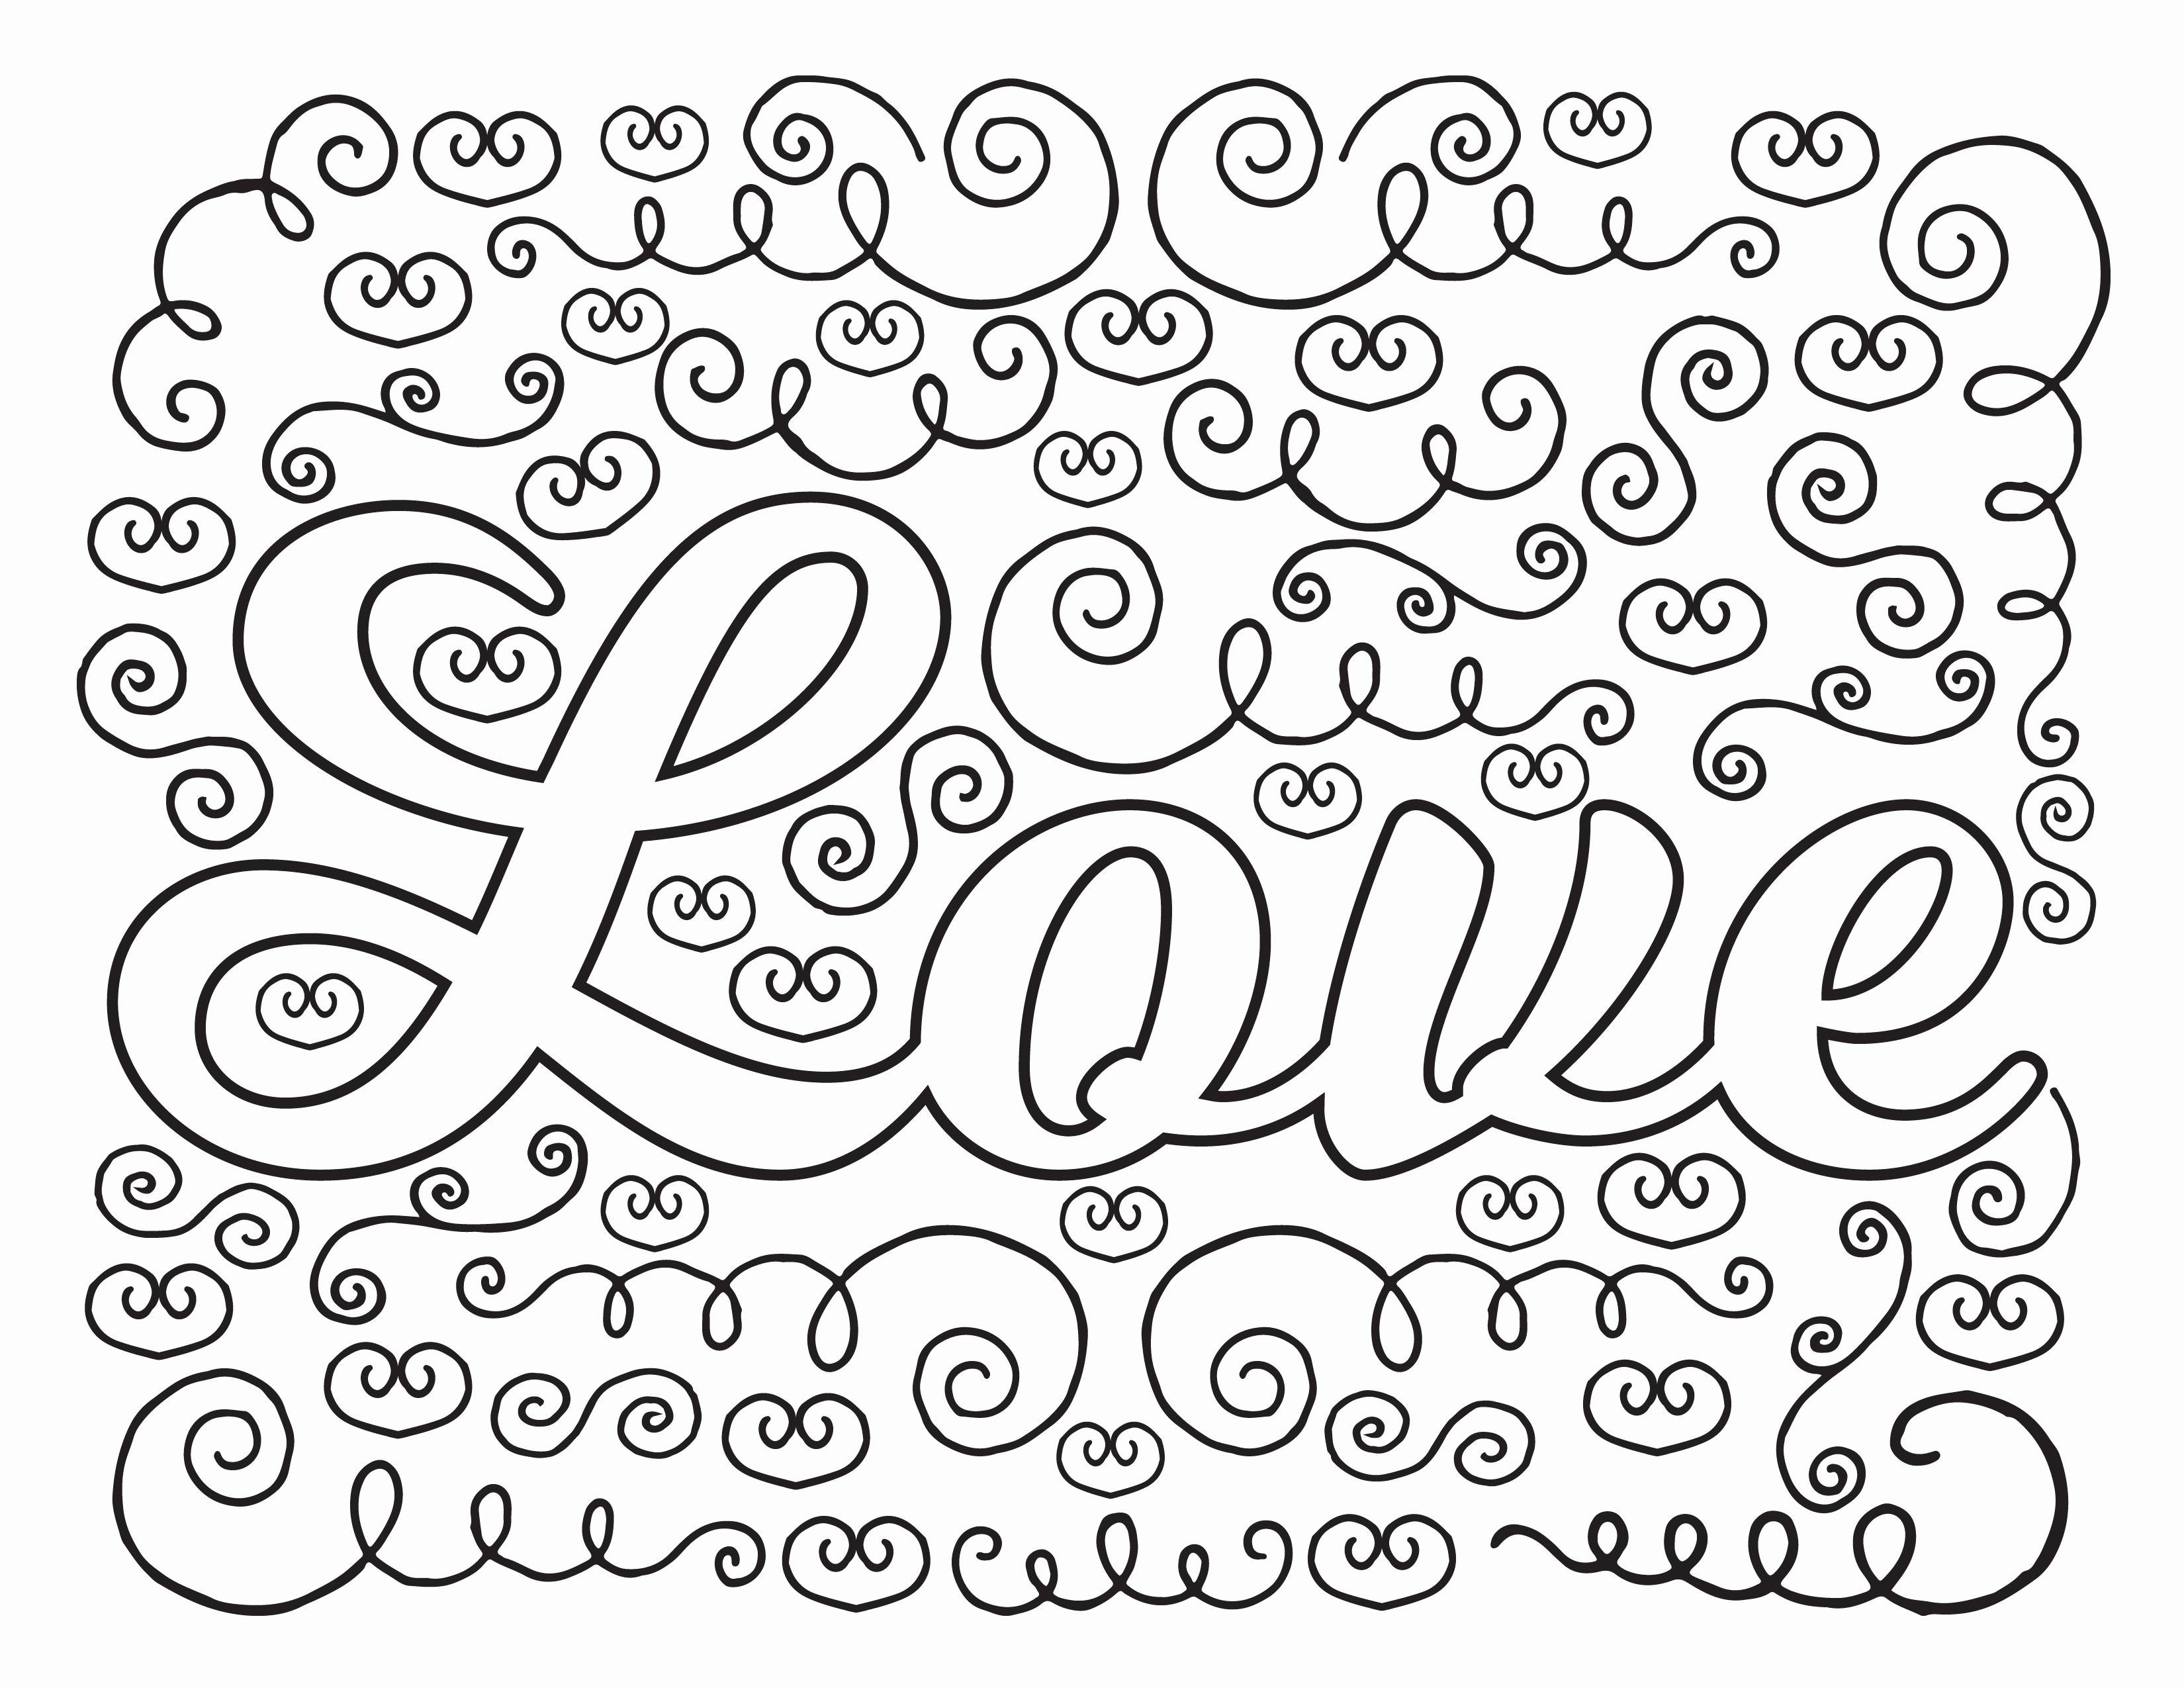 free wedding coloring pages to print Download-Printable Bride and Groom Coloring Pages Free Printable Kids Coloring Pages Beautiful Crayola Pages 0d 18-p